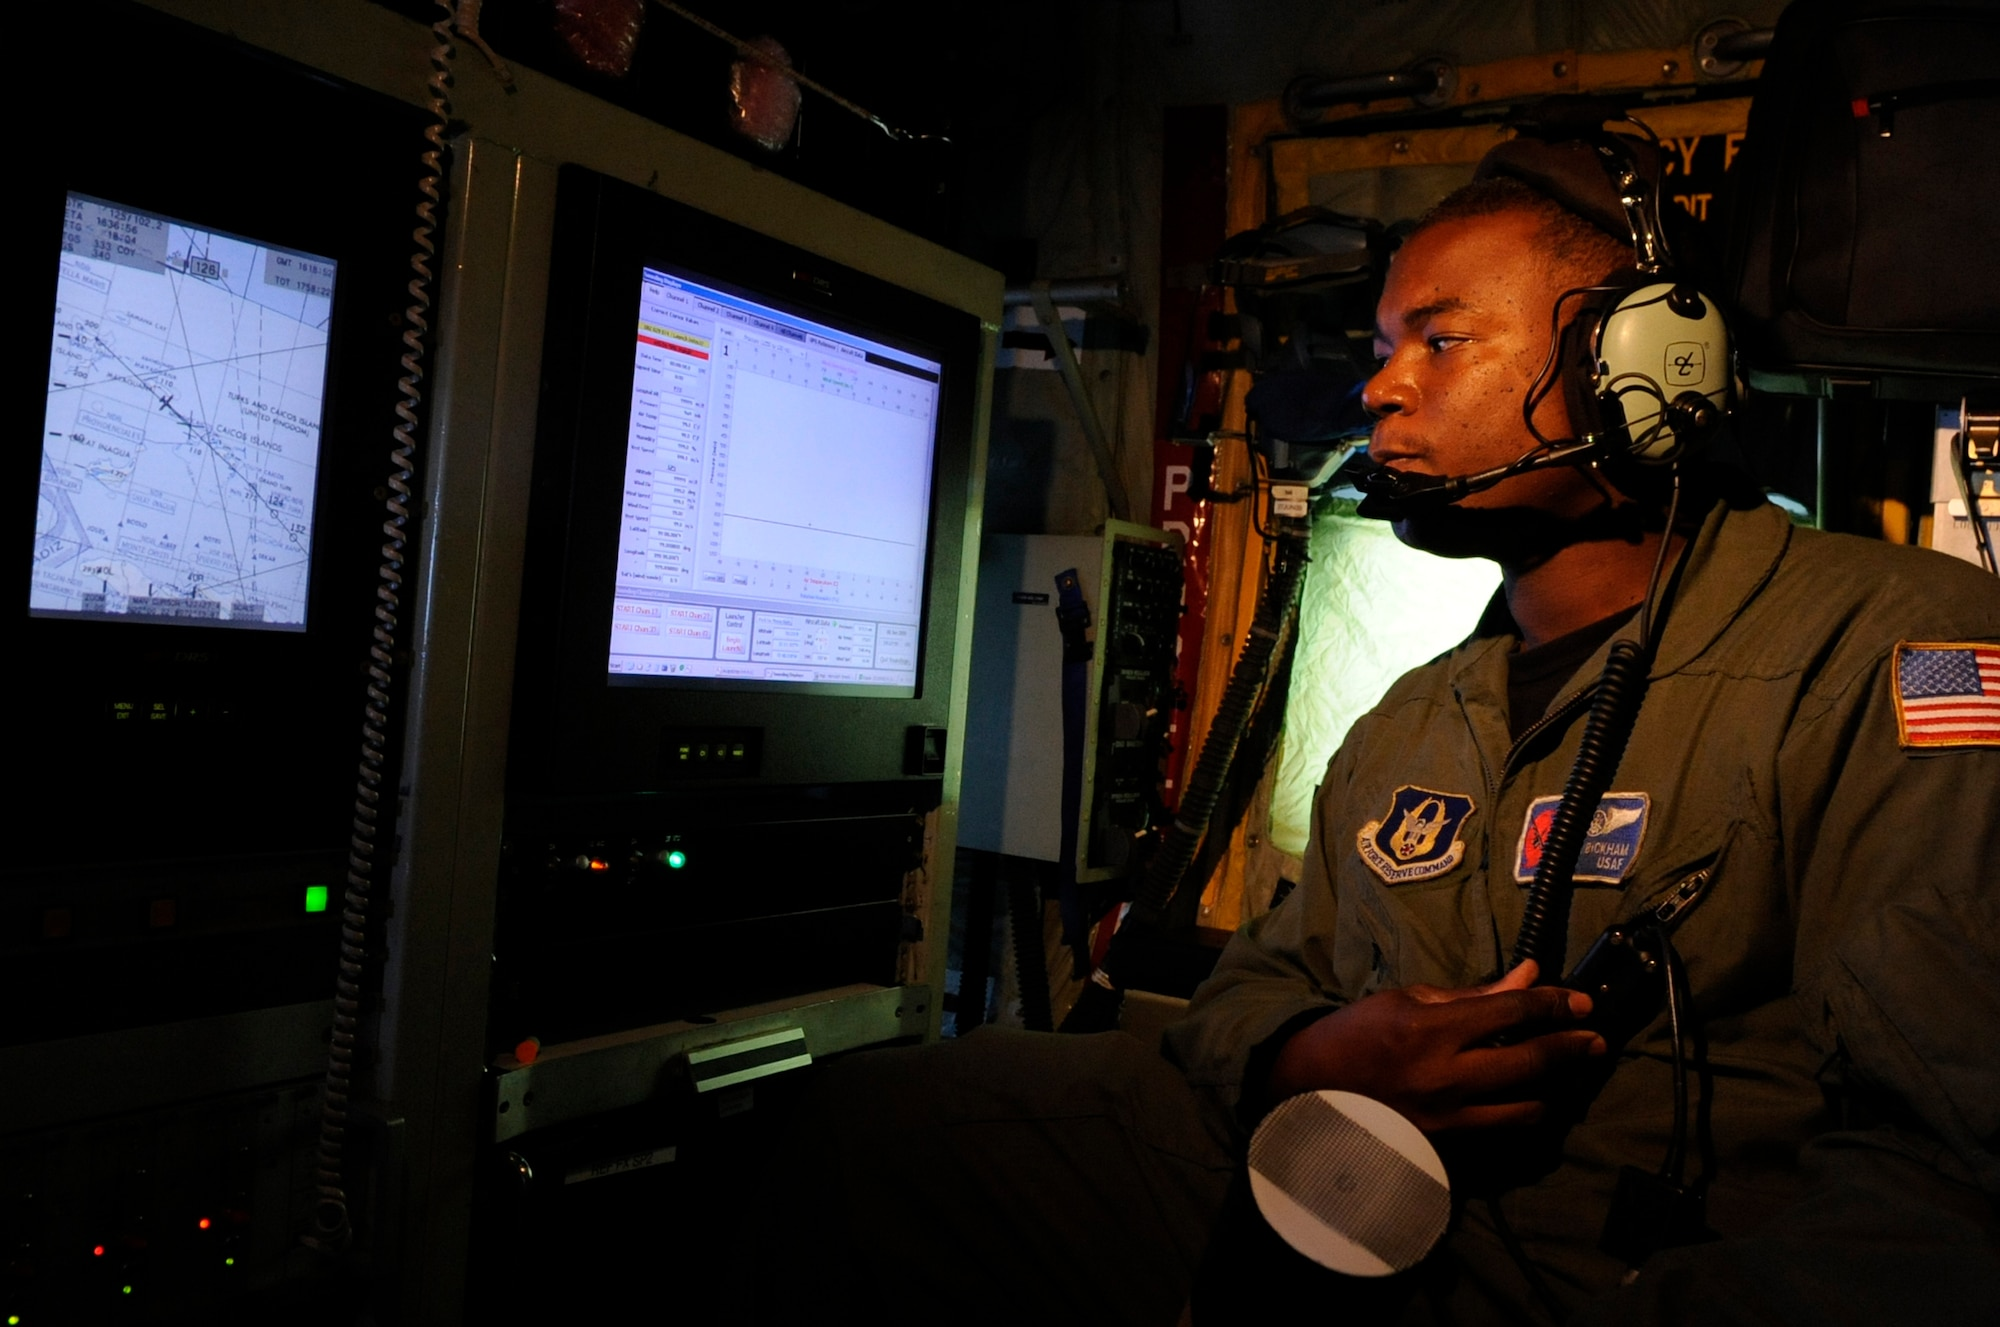 Tech. Sgt. Troy Bickham checks weather data on a training mission recently to St. Croix, V.I., on a WC-130J Hercules from Keesler Air Force Base, Miss. Sergeant Bickham is a weather reconnaissance loadmaster assigned to the Hurricane Hunters of the 53rd Weather Reconnaissance Squadron.  (U.S. Air Force photo/Staff Sgt. Desiree N. Palacios)